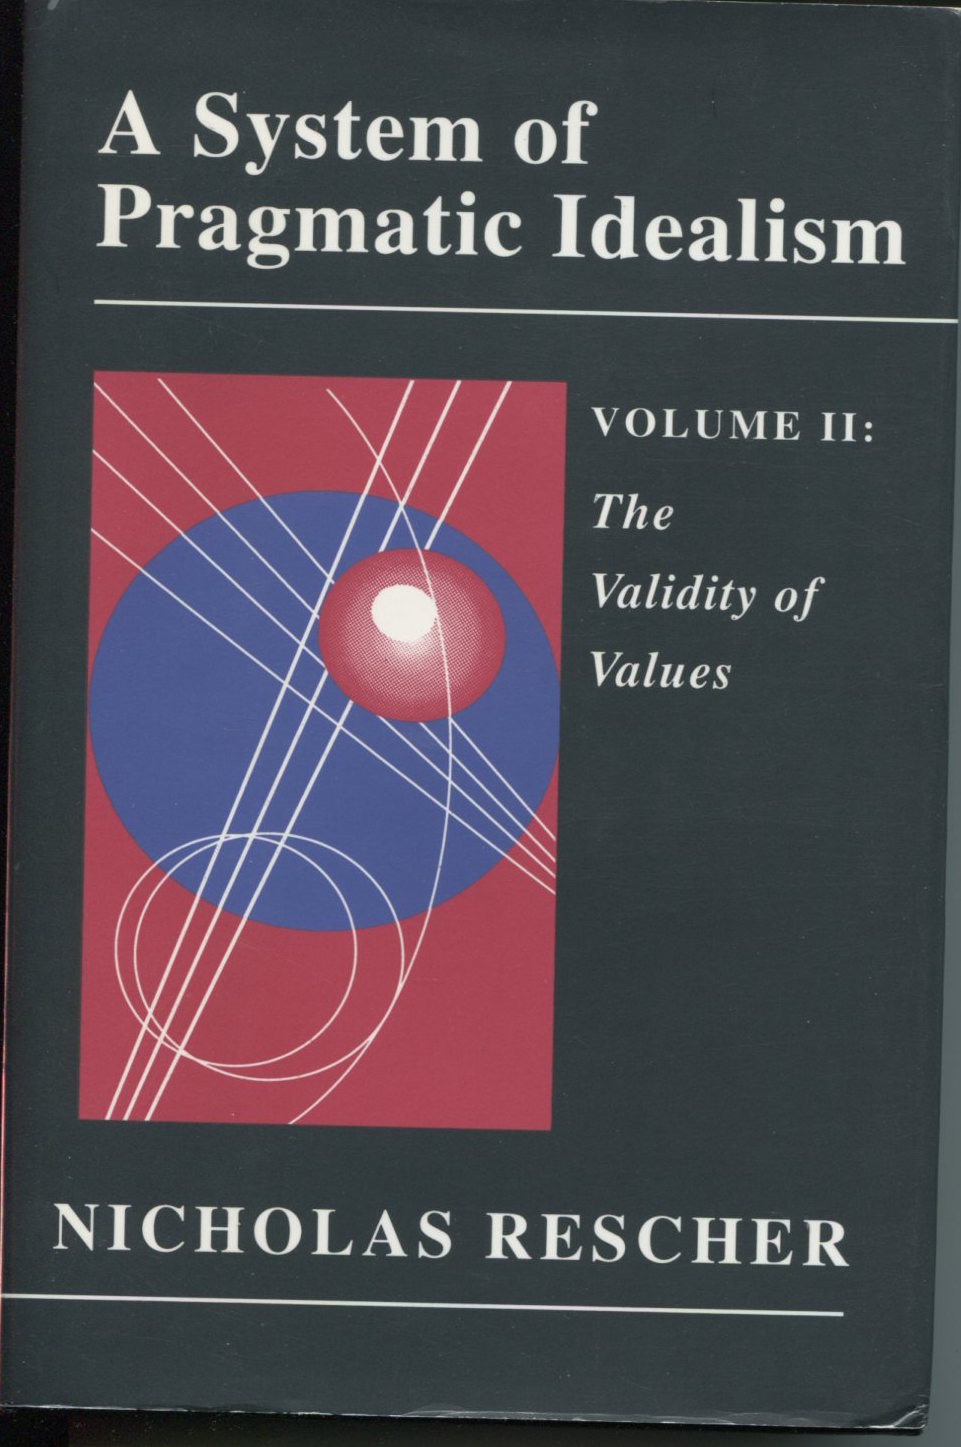 A System of Pragmatic Idealism, Volume Two. The Validity of Values. A Normative Theory of Evaluative Rationality.